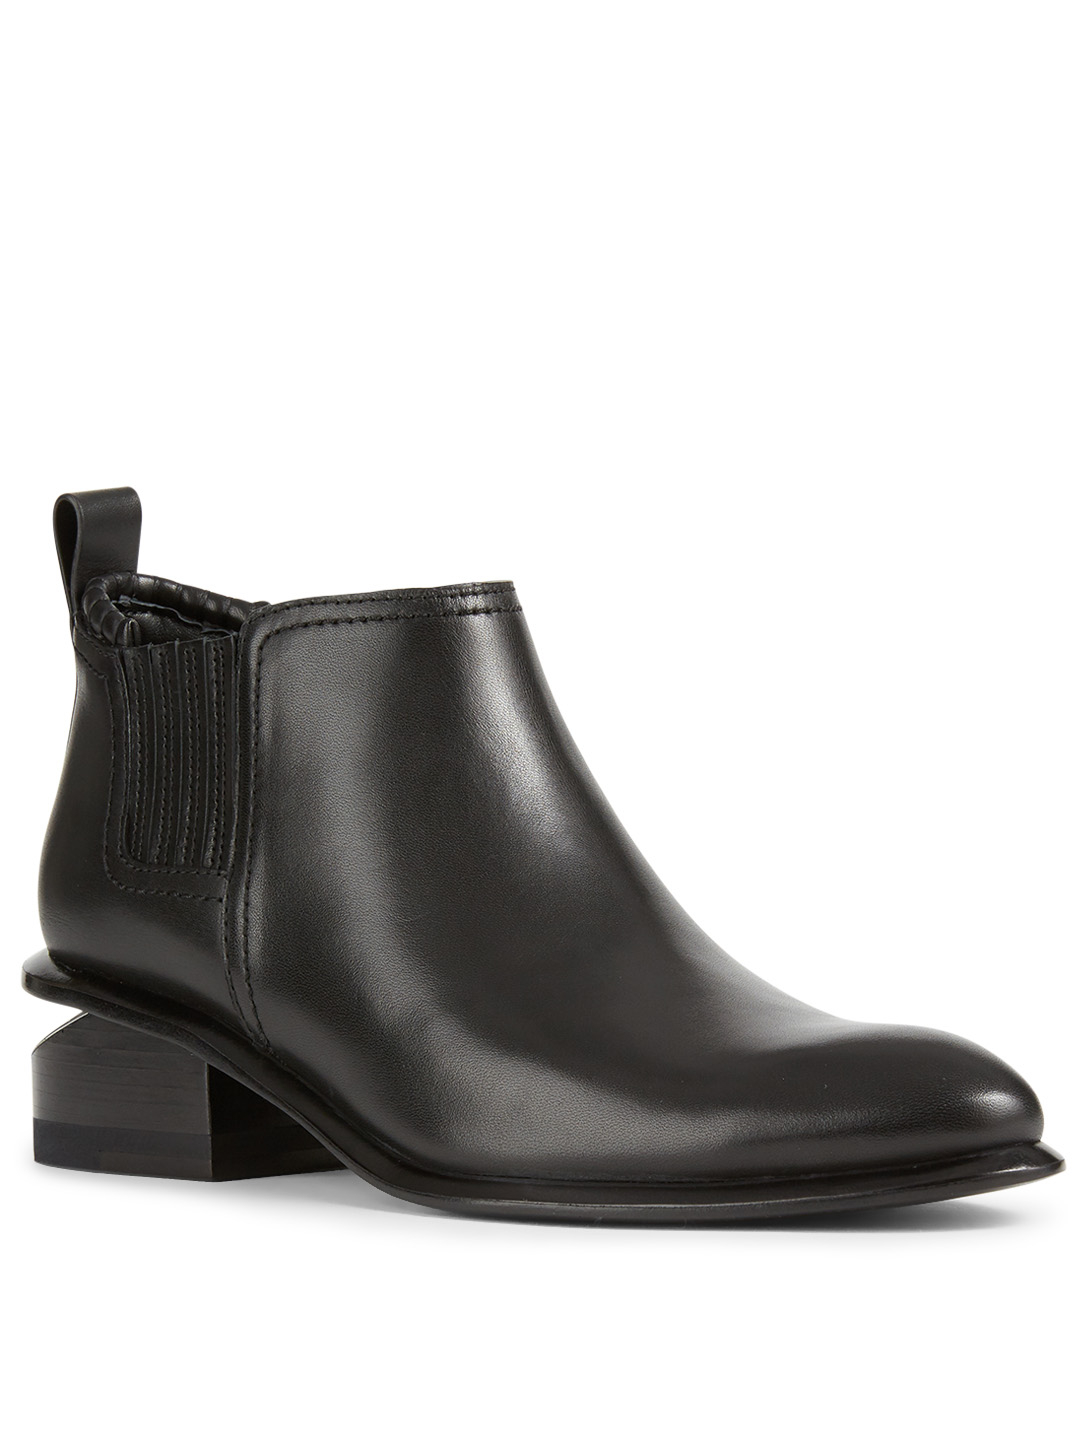 ALEXANDER WANG Kori Leather Ankle Boots Women's Black